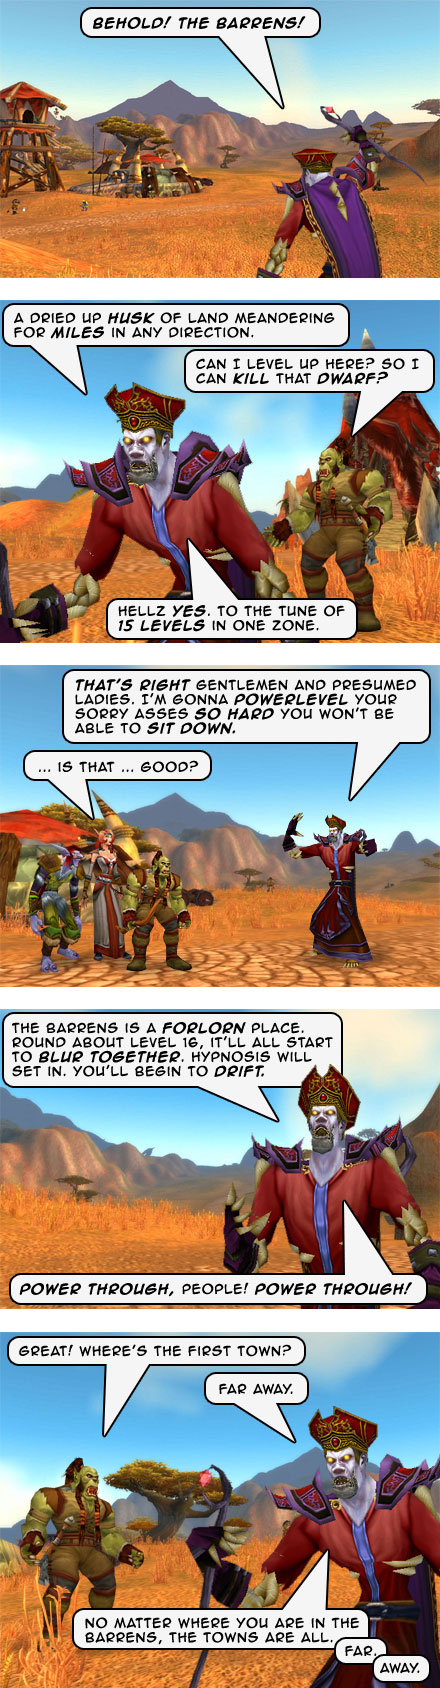 Part 2: Behold! The Barrens!